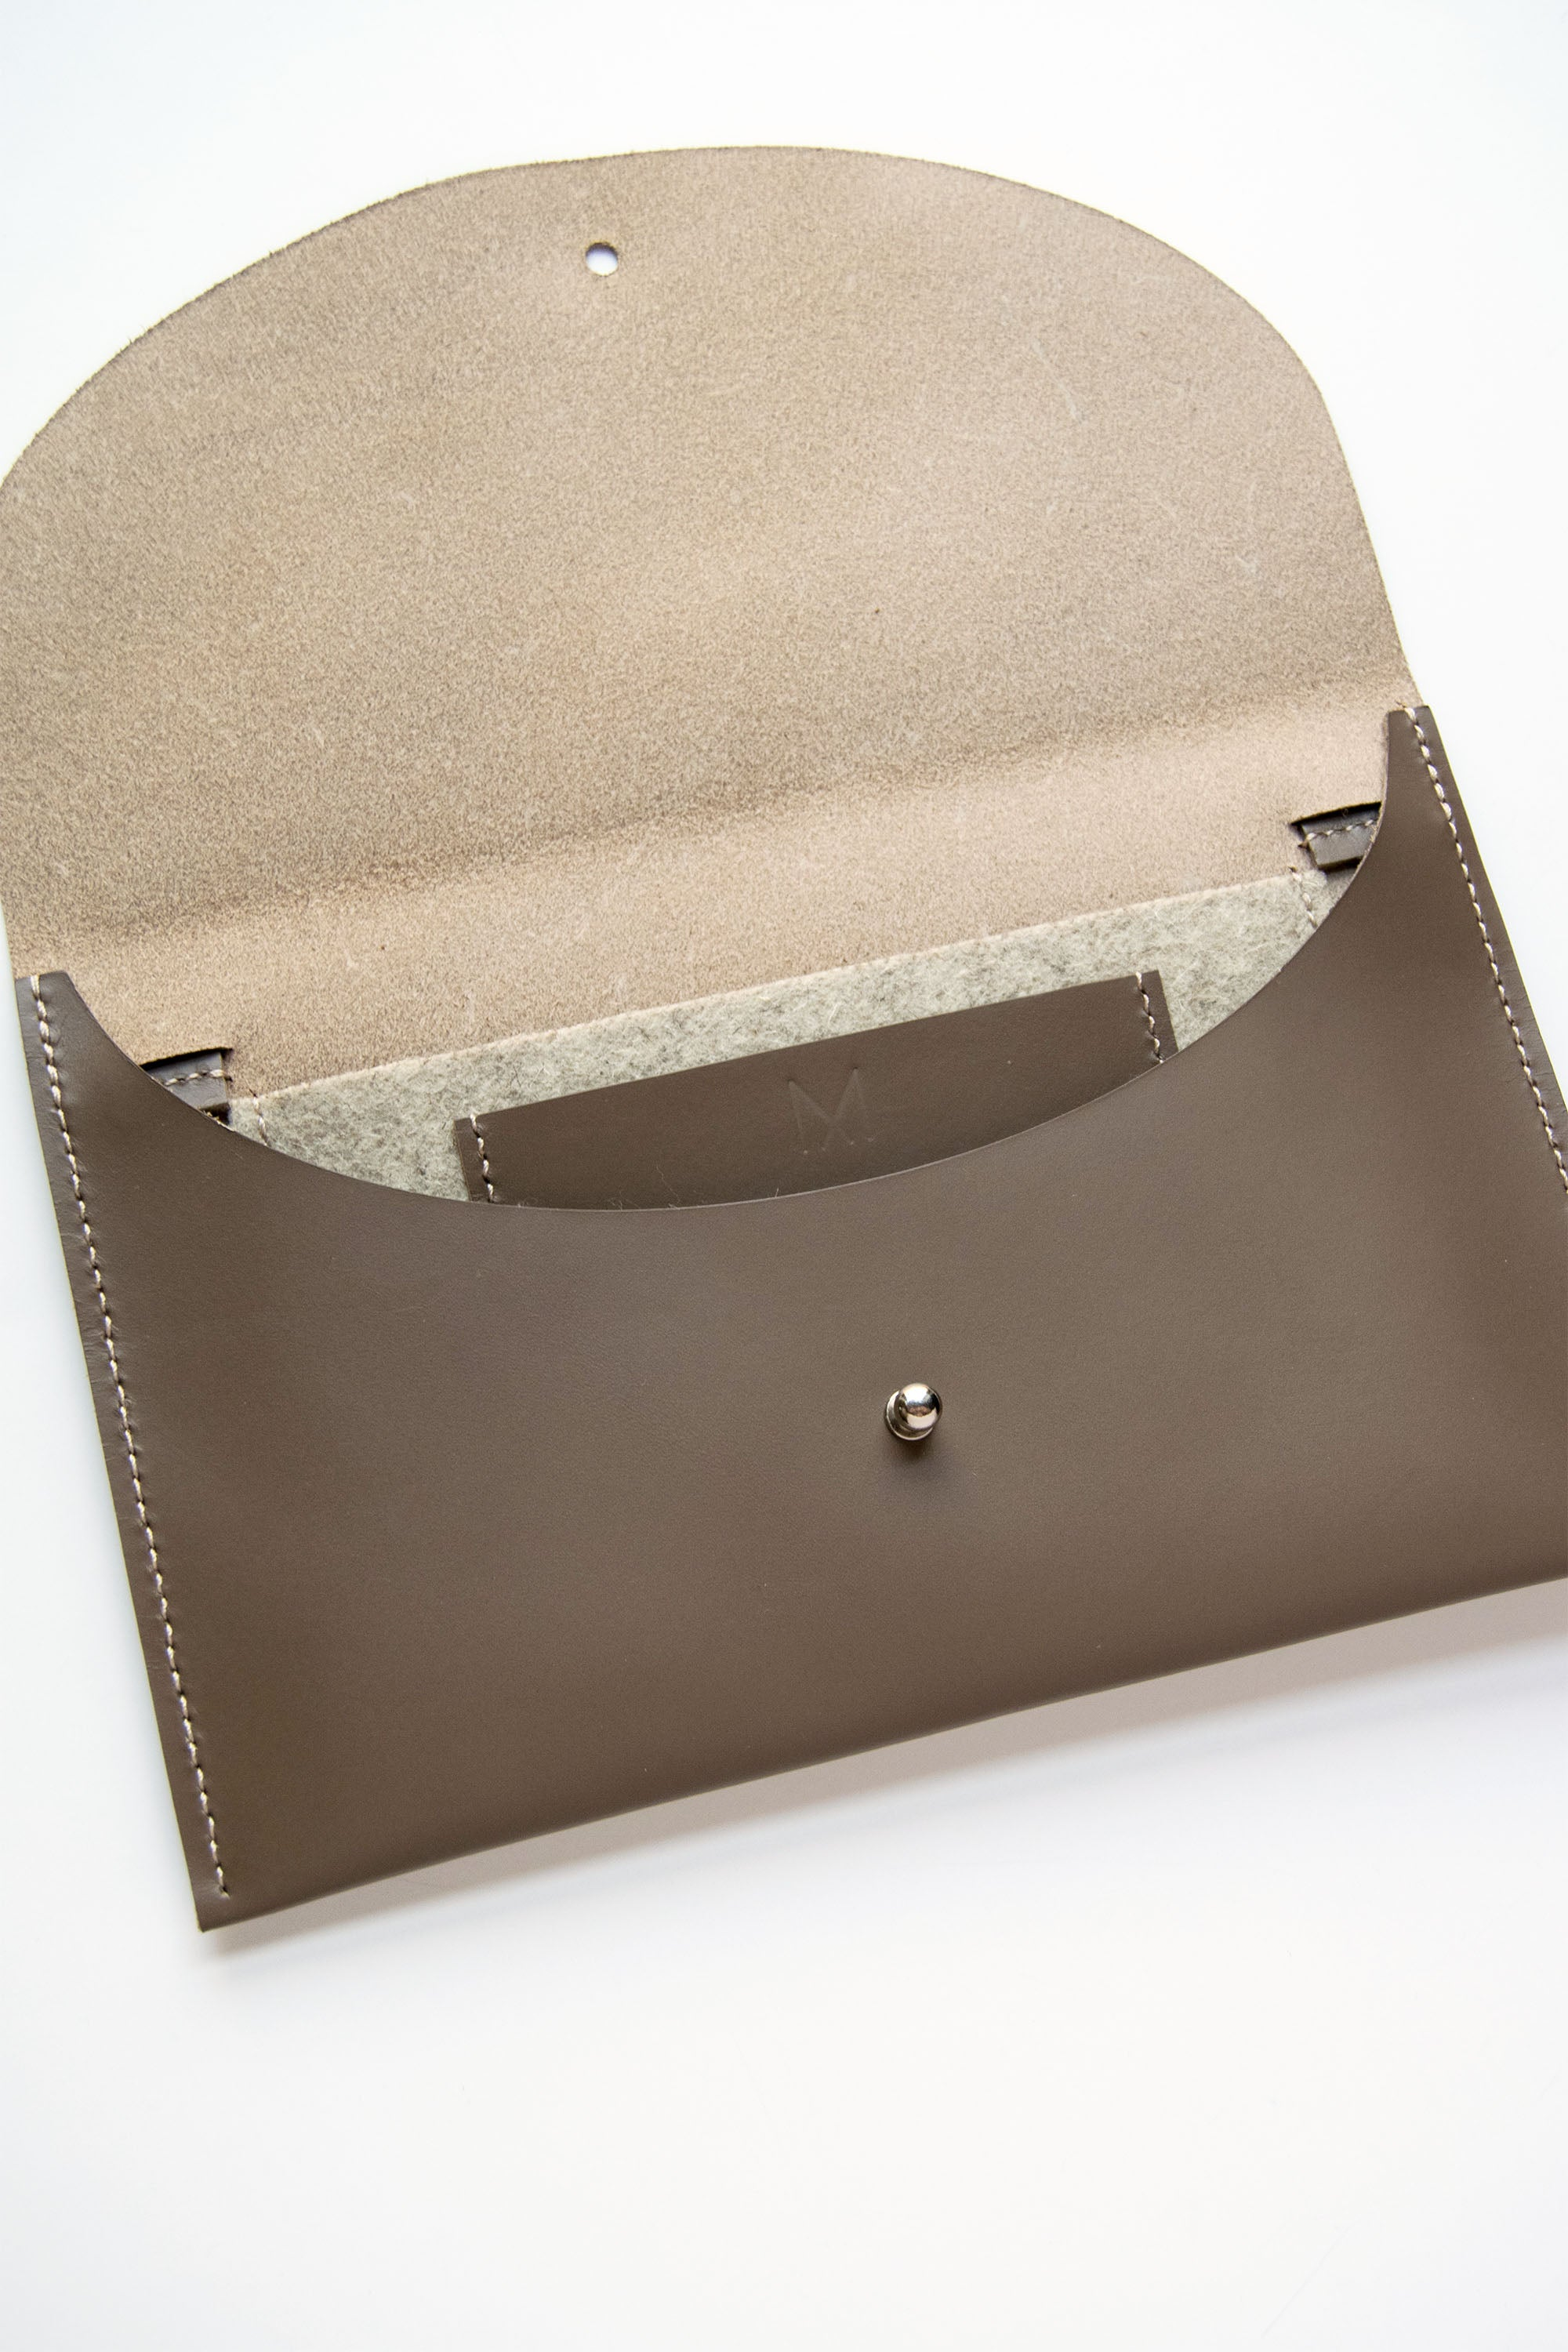 Leather Convertible Crossbody Clutch Bag